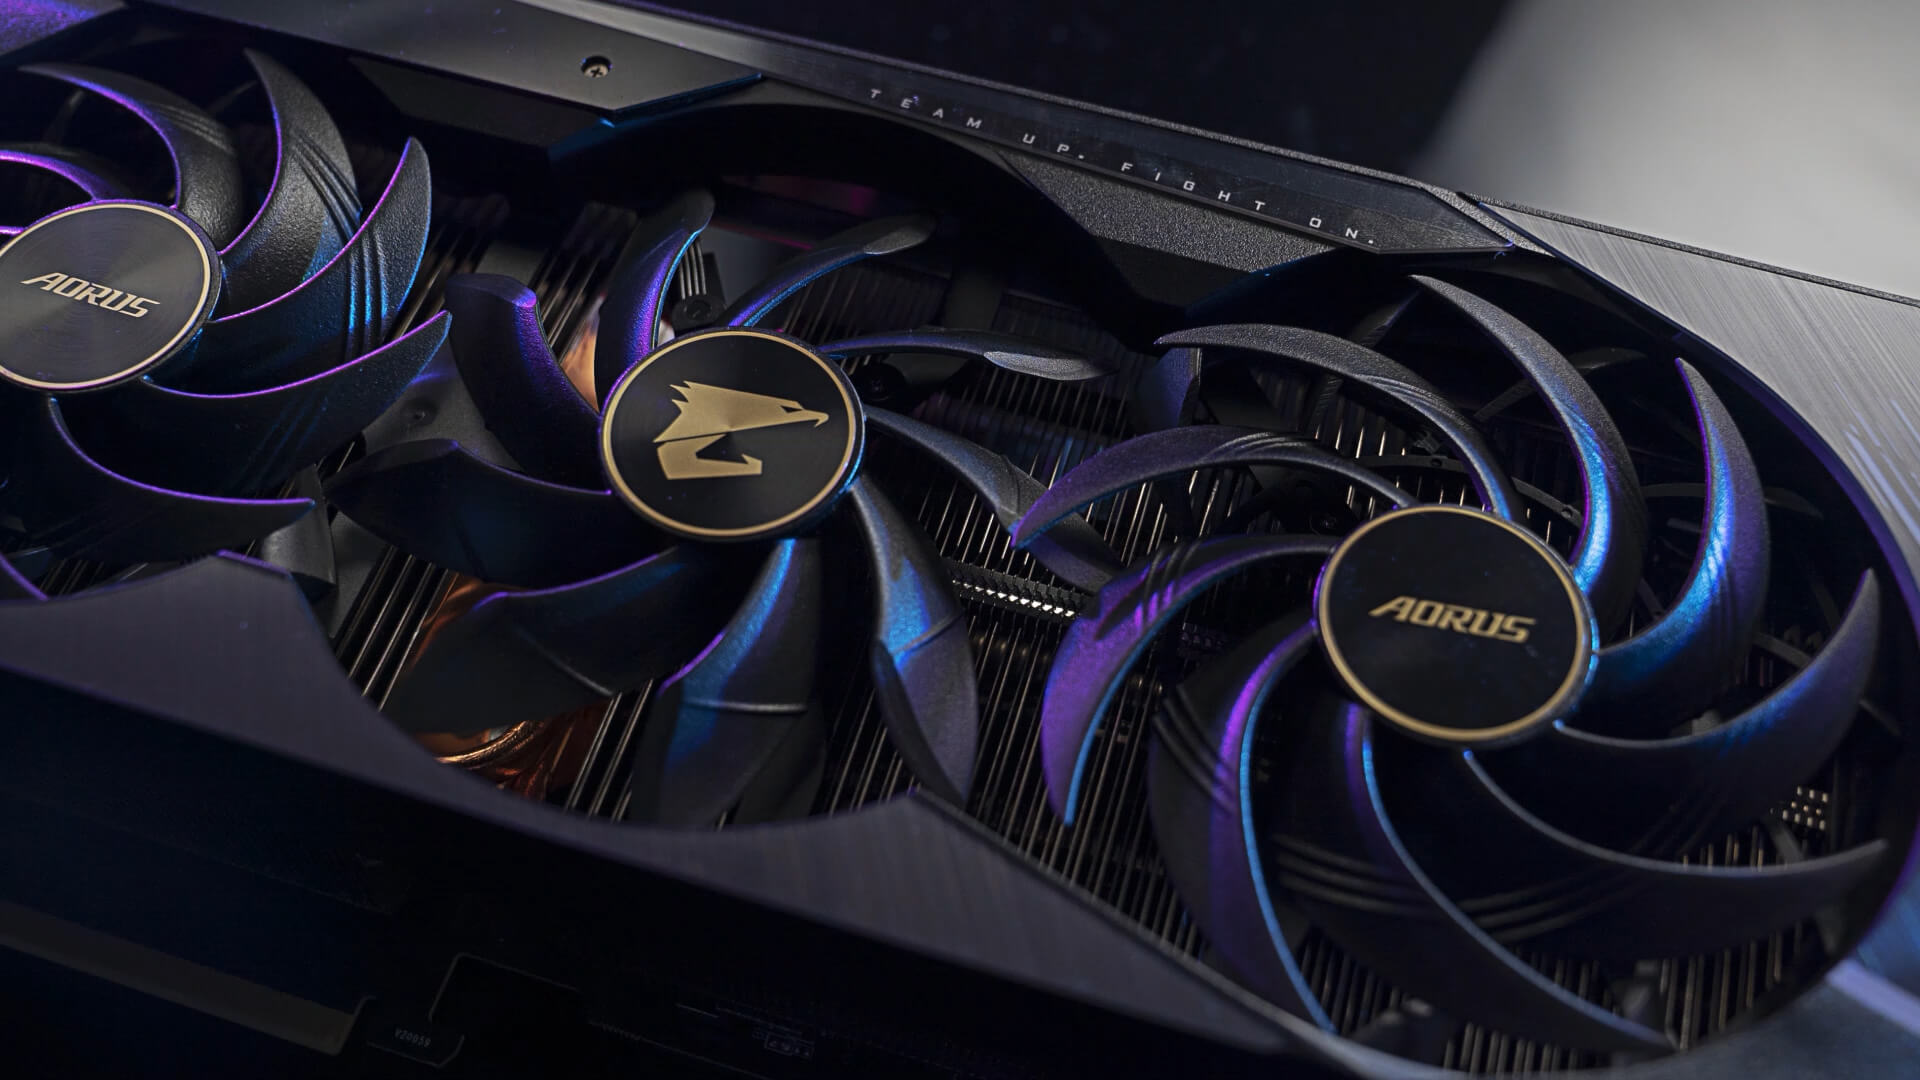 Up Your Game - What Graphics Card Cooling Options are There?